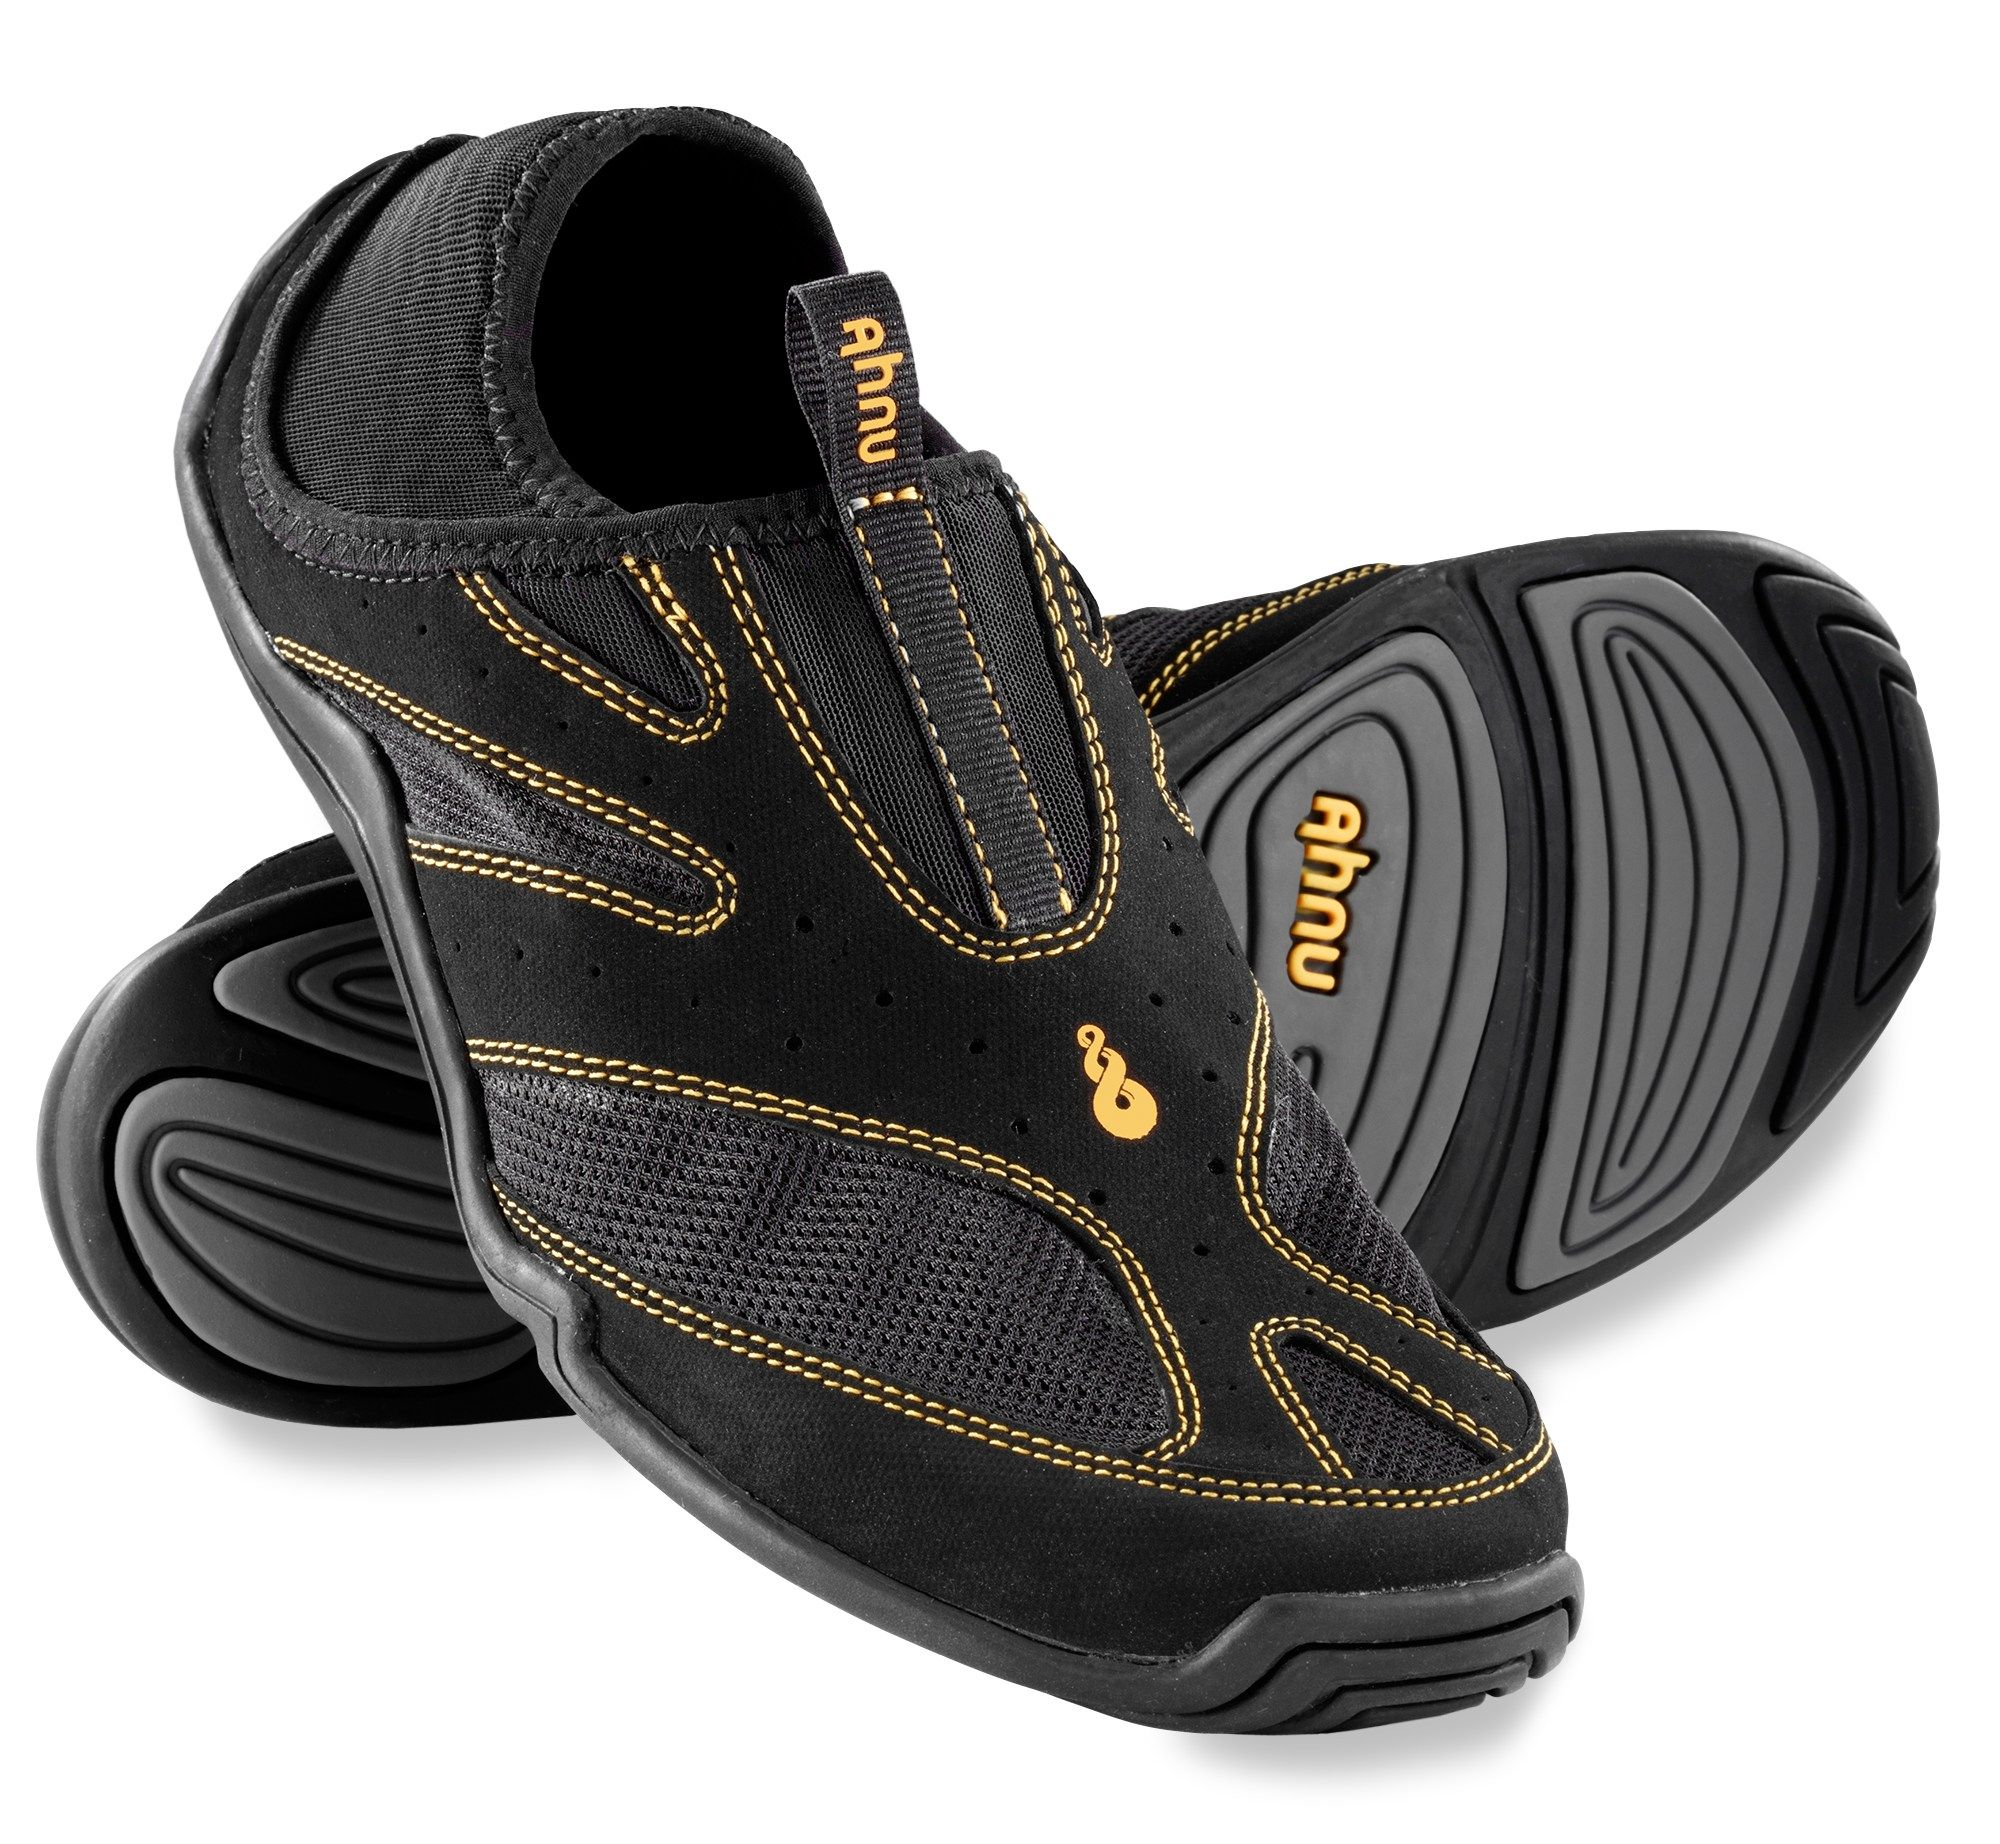 Ahnu Men's Delta Water Shoes | Water shoes